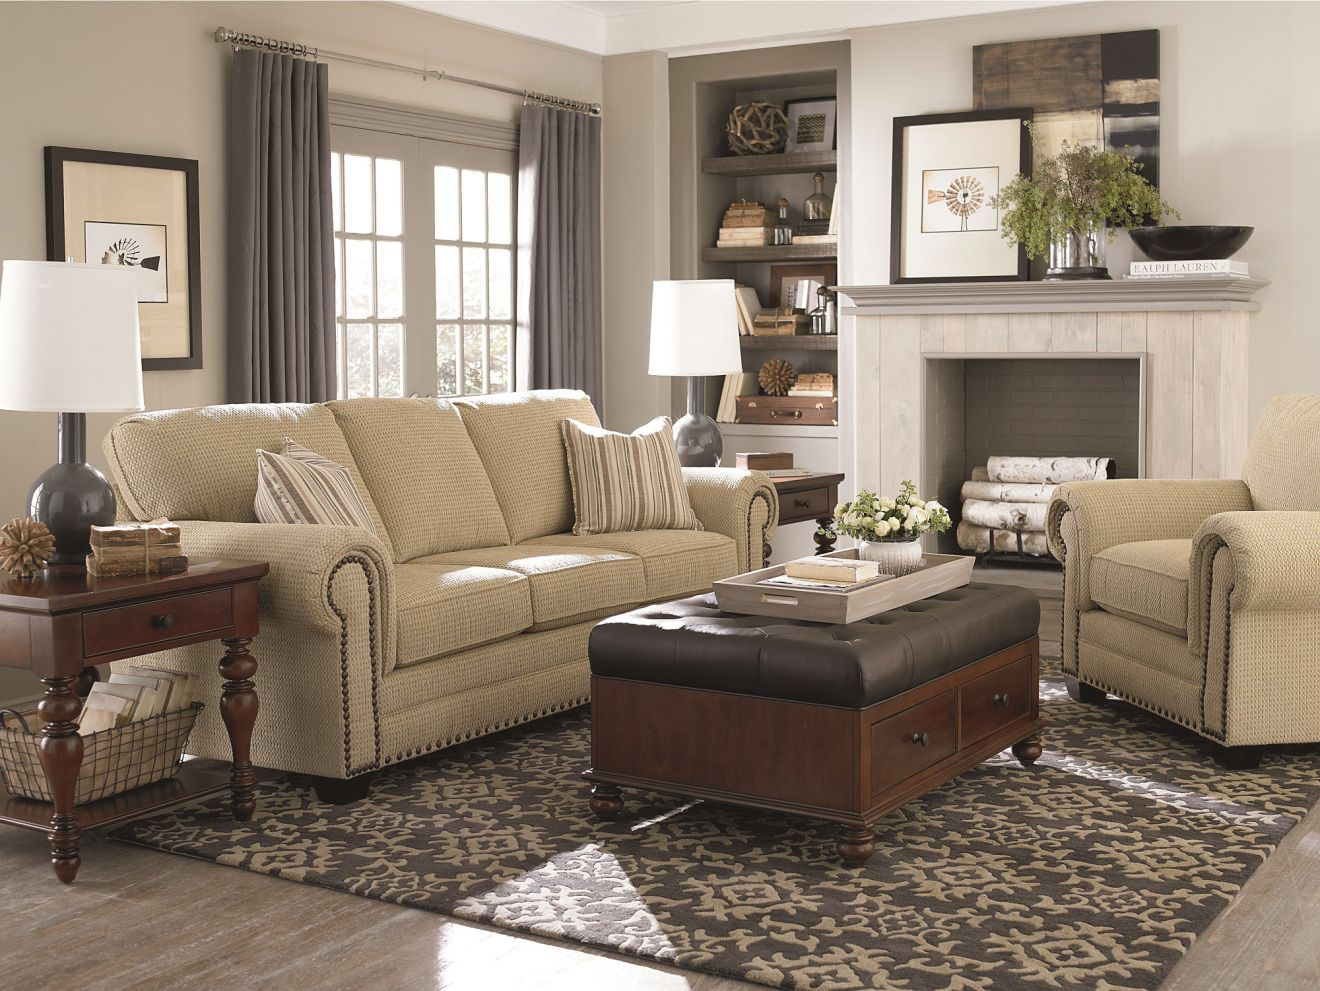 Best bassett furniture quality reviews with bassett - Best quality living room furniture ...